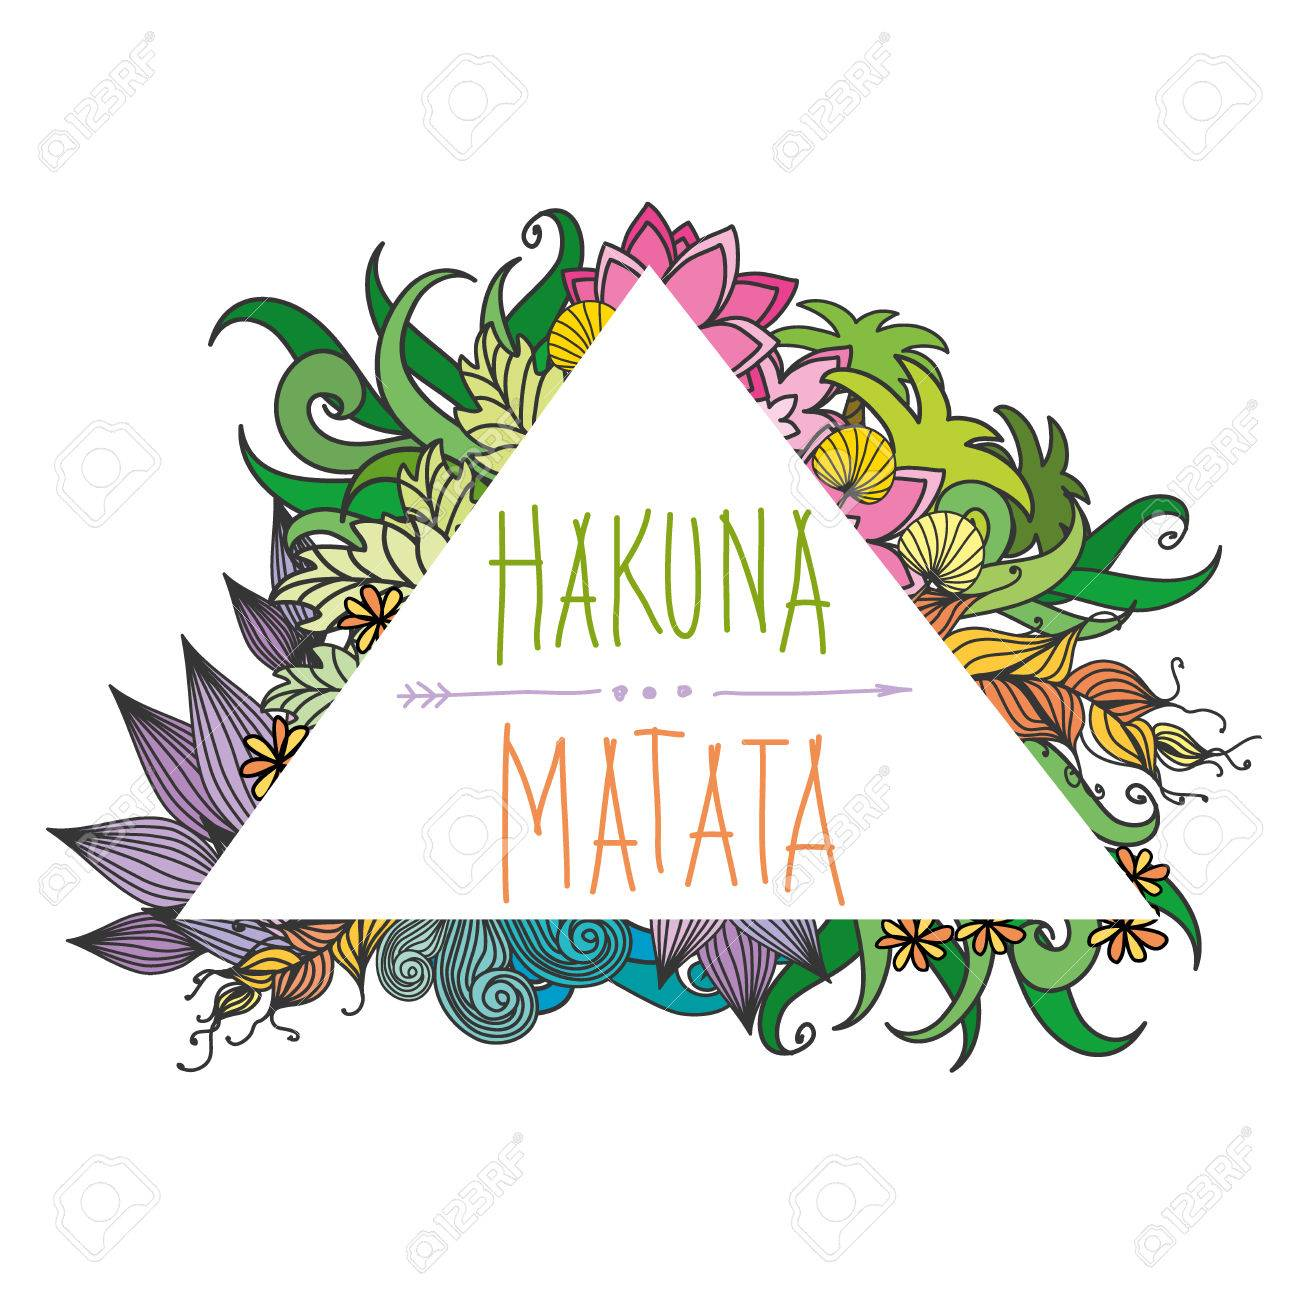 Hakuna matata - no worries,lettering with floral elements. Vector  illustration. Stock Vector